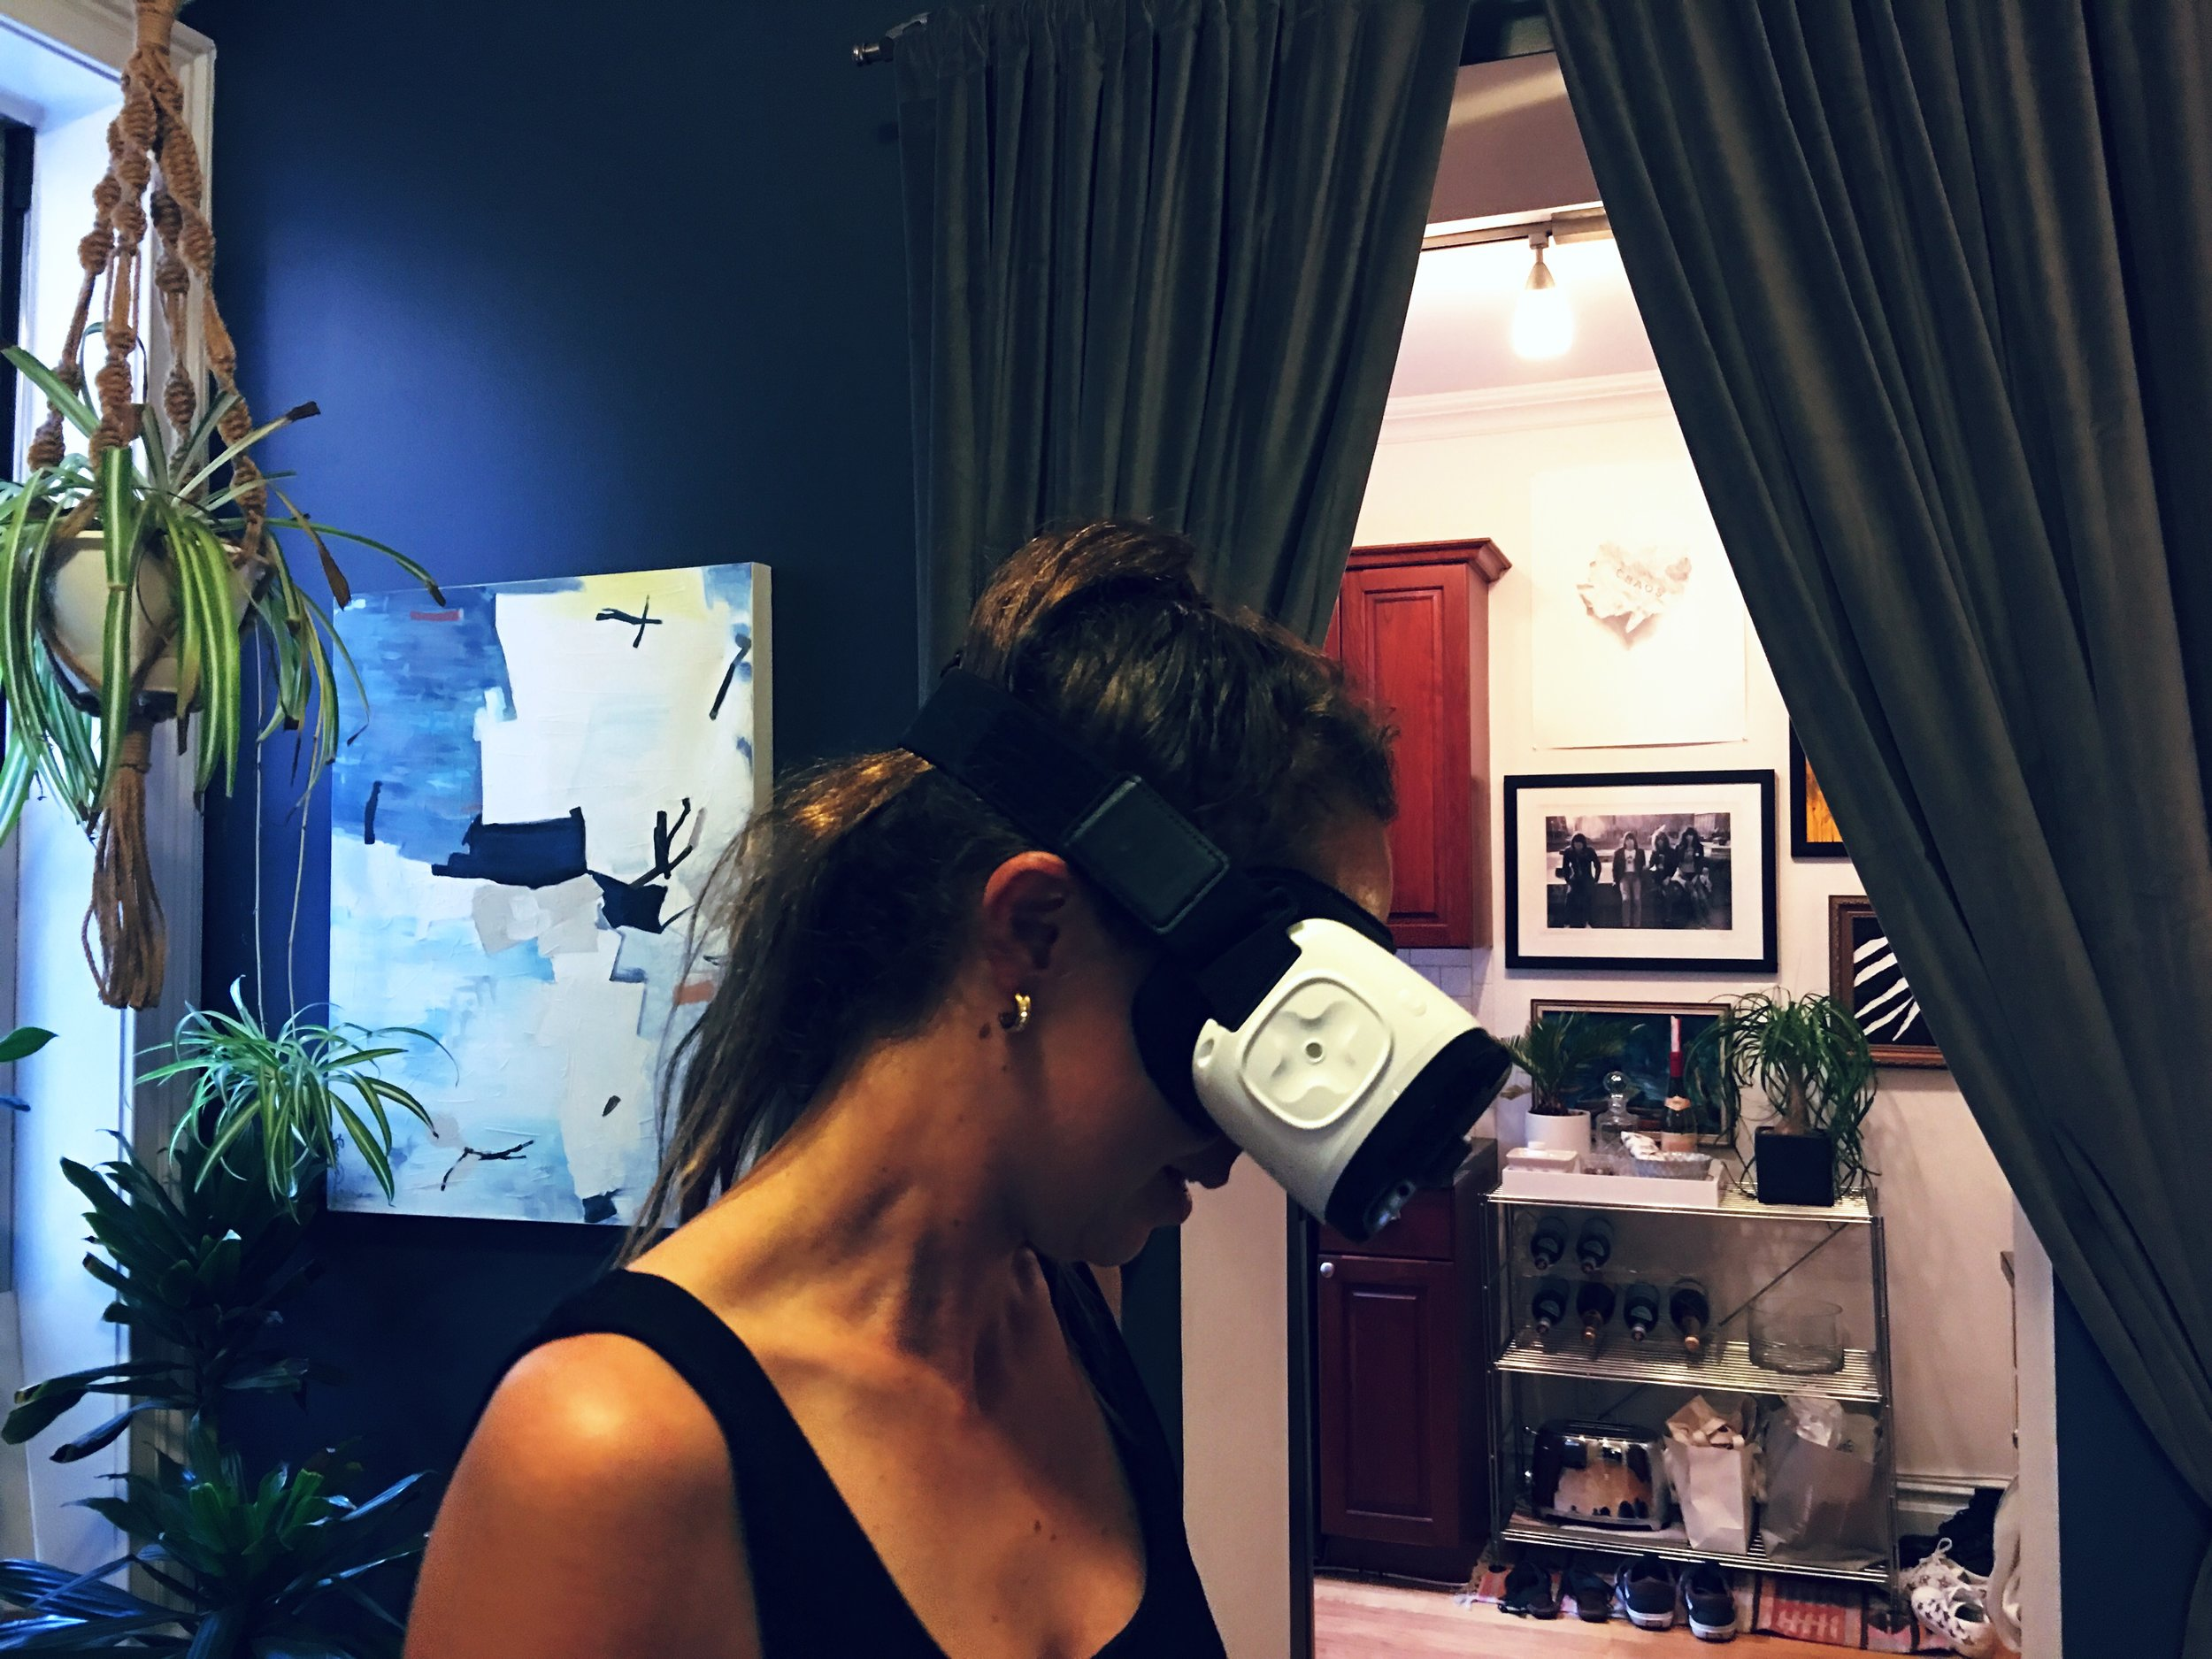 Angie Davis, Producer at Temme, demoing Mothers of the Atlas on Samsung Gear in New York.